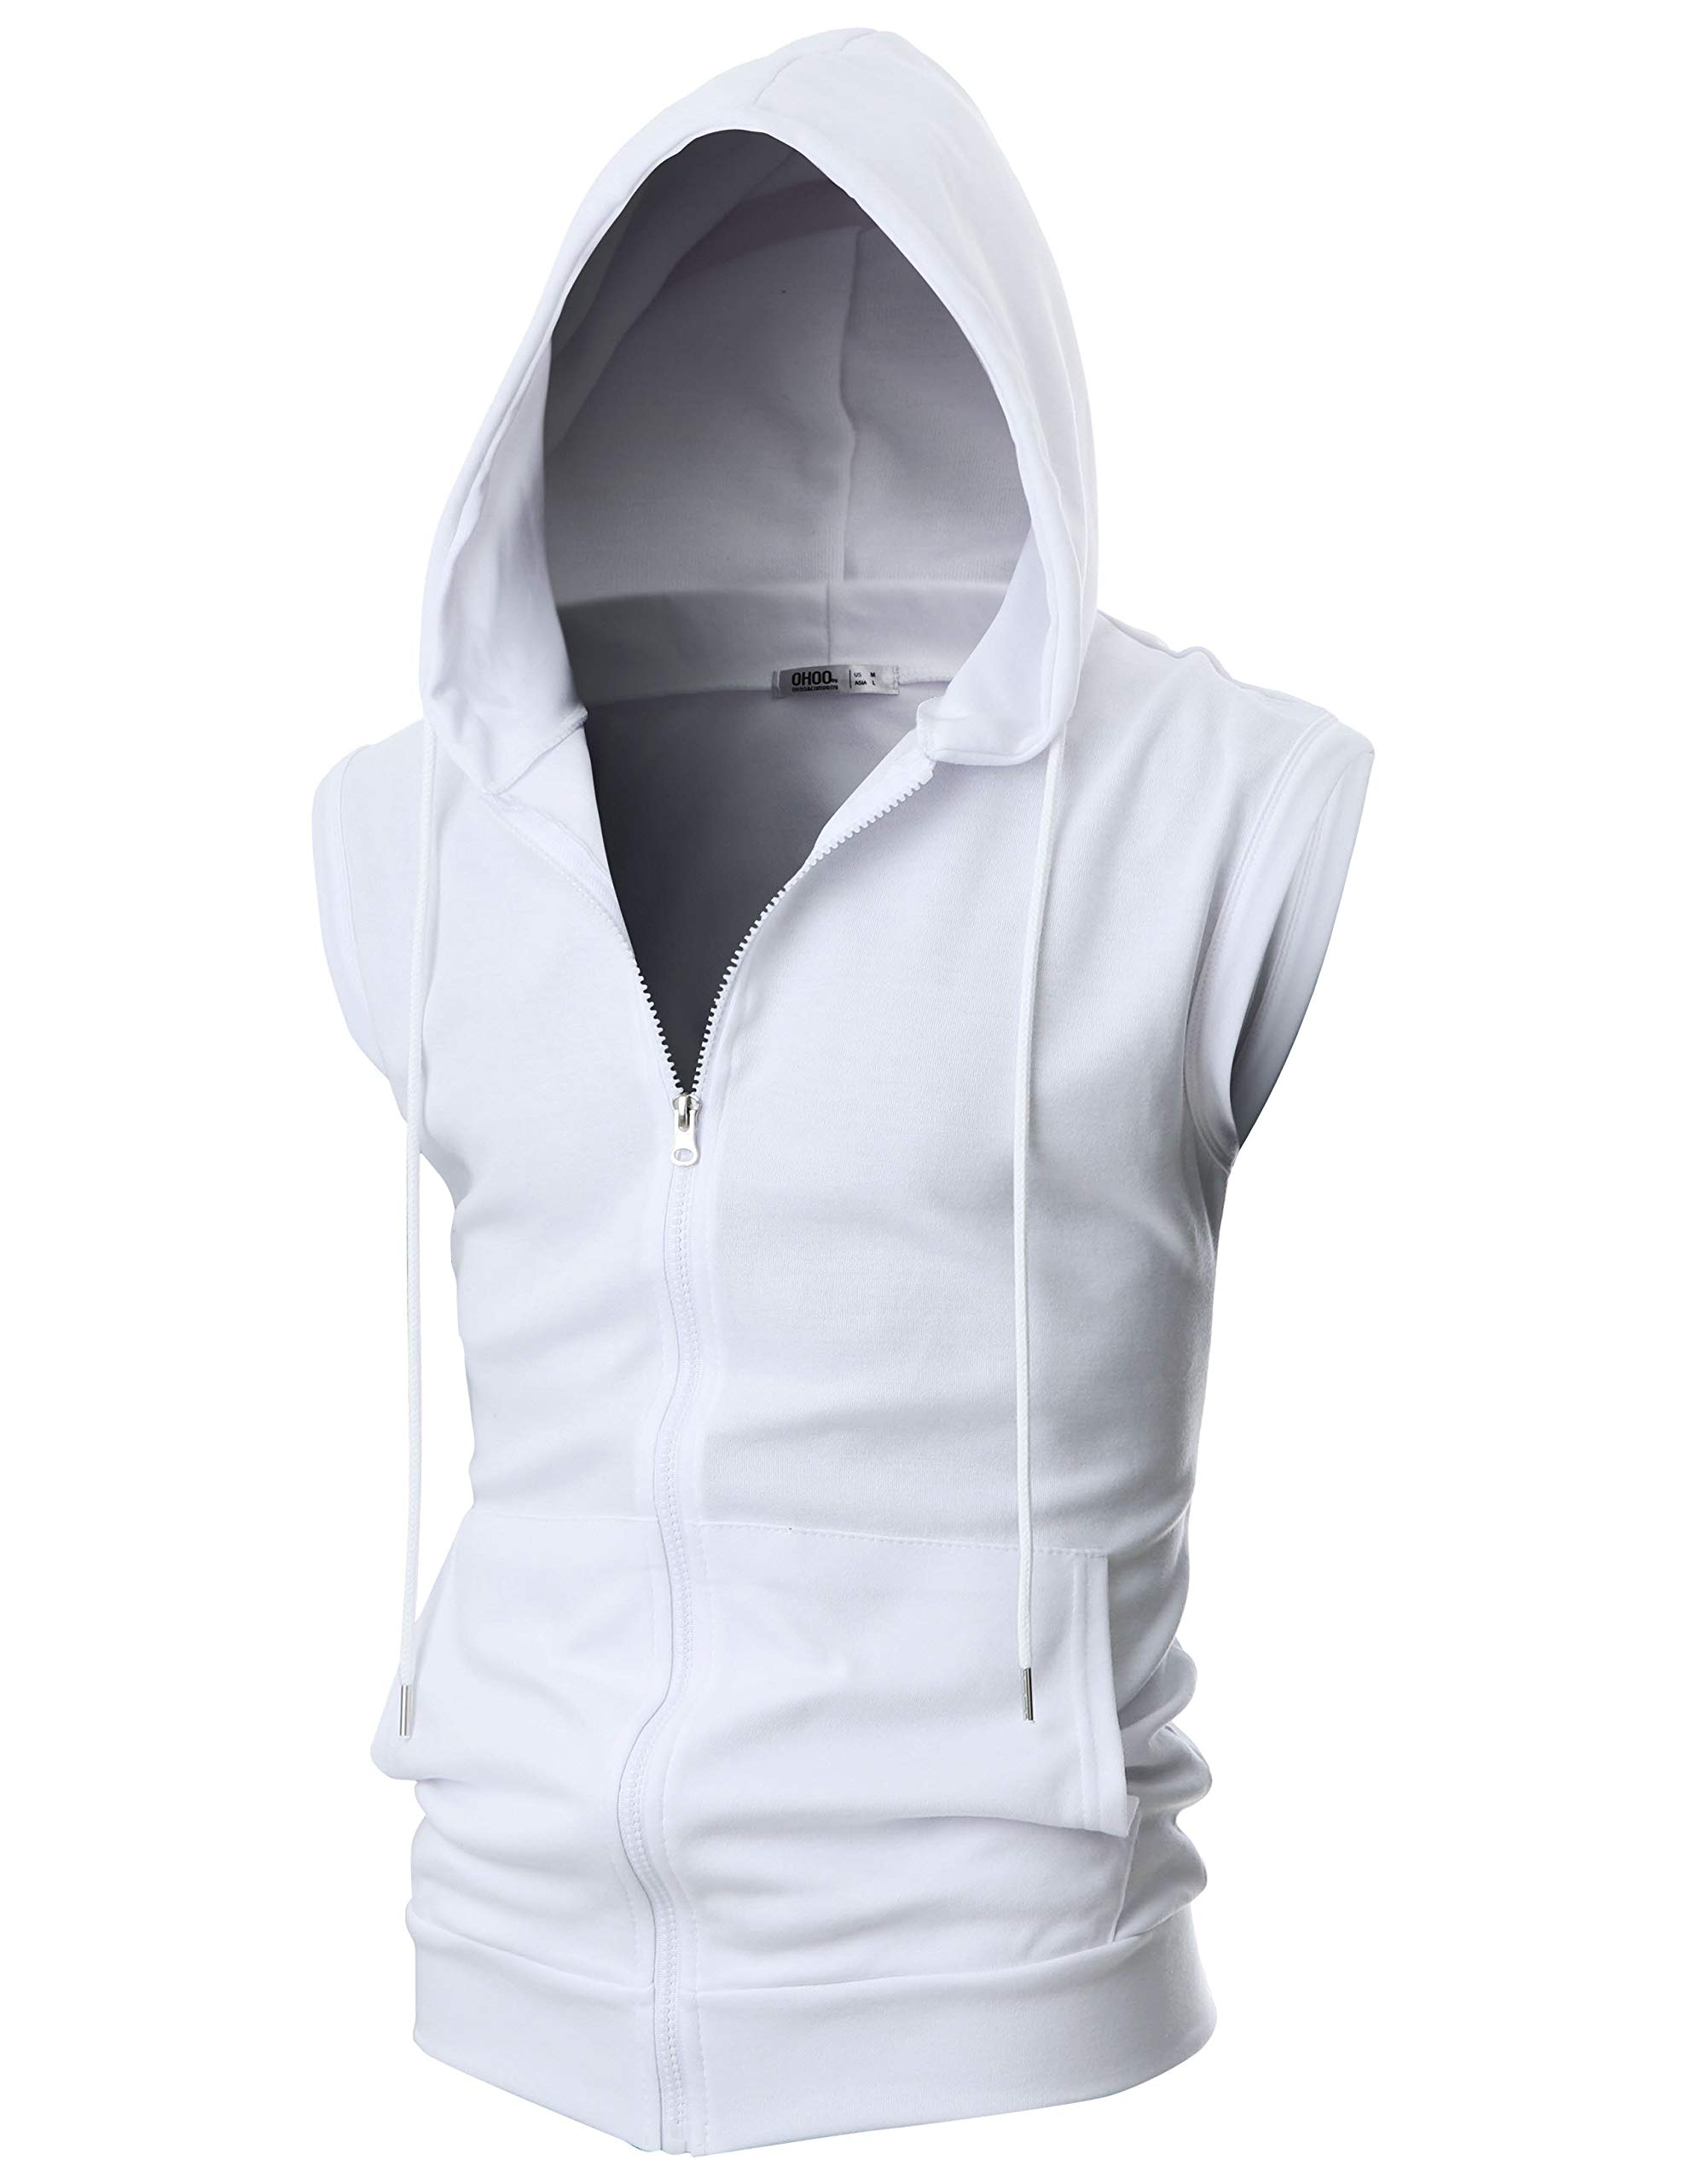 OHOO Mens Slim Fit Sleeveless Lightweight Zip-up Hooded Vest with Single Slide Zipper/DCF012-WHITE-S by OHOO